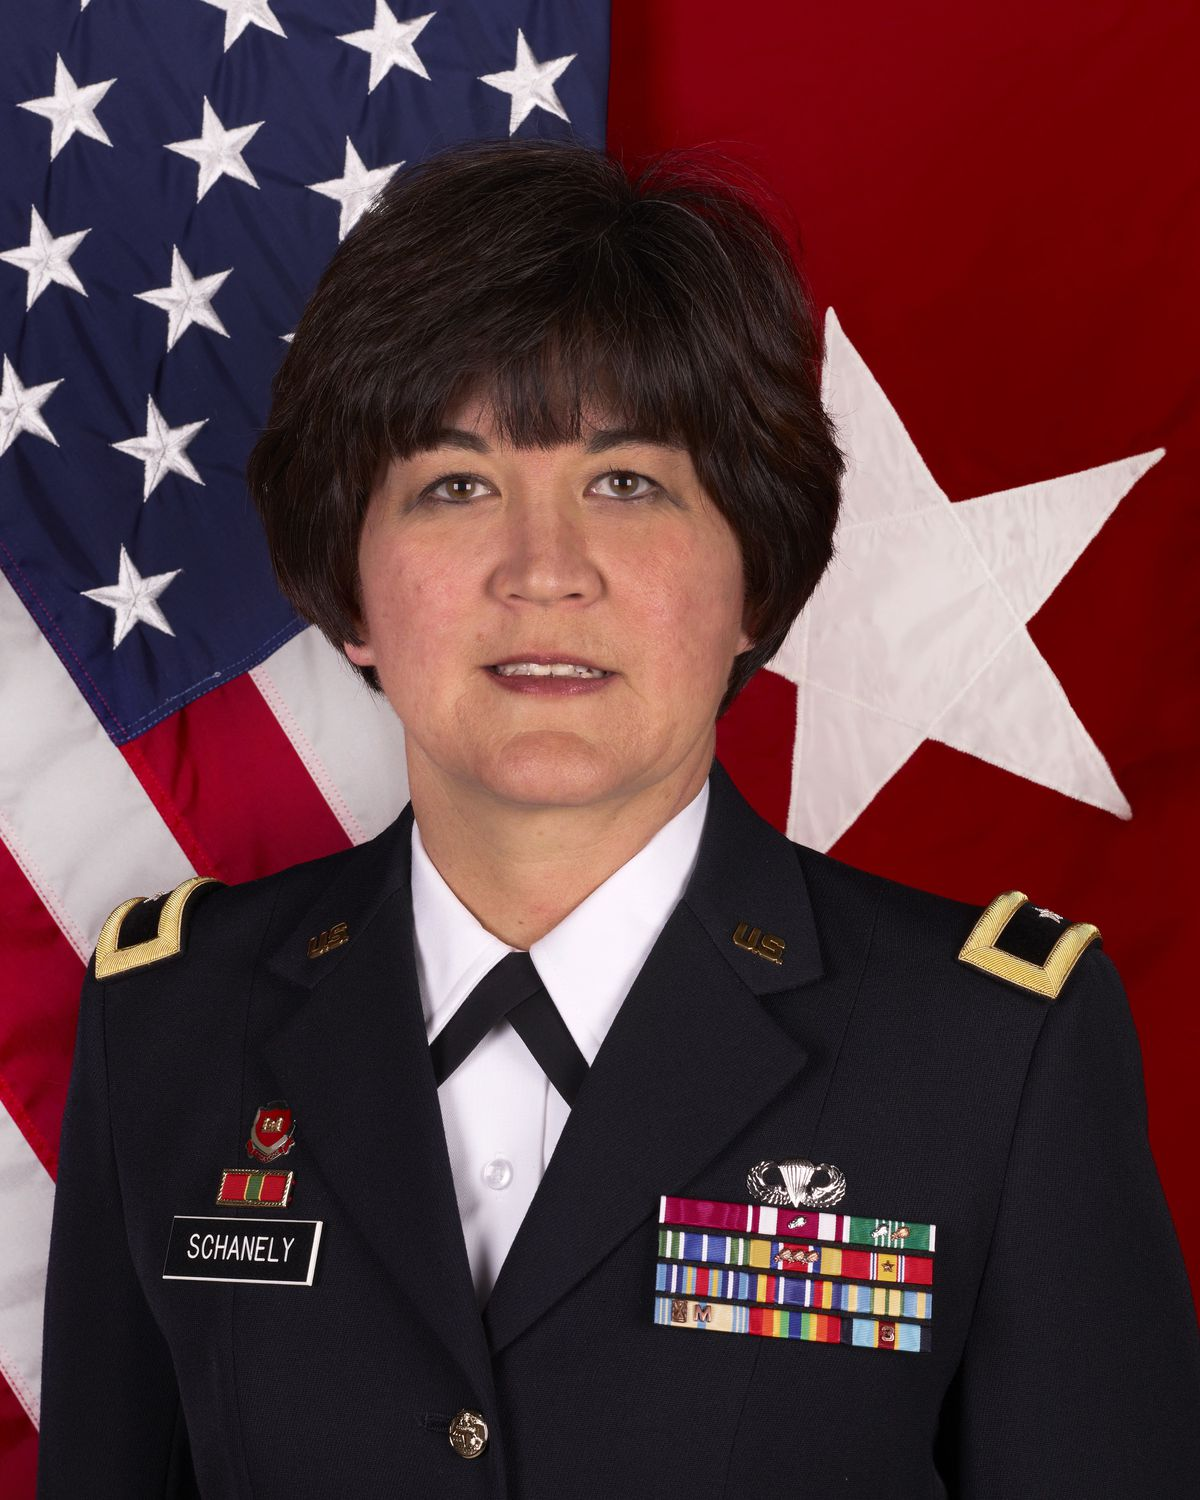 Miyako Schanely, the two-star general who has been reprimanded and relinquished her command of the Army Reserve's 416th Theater Engineer Command, based in Darien.